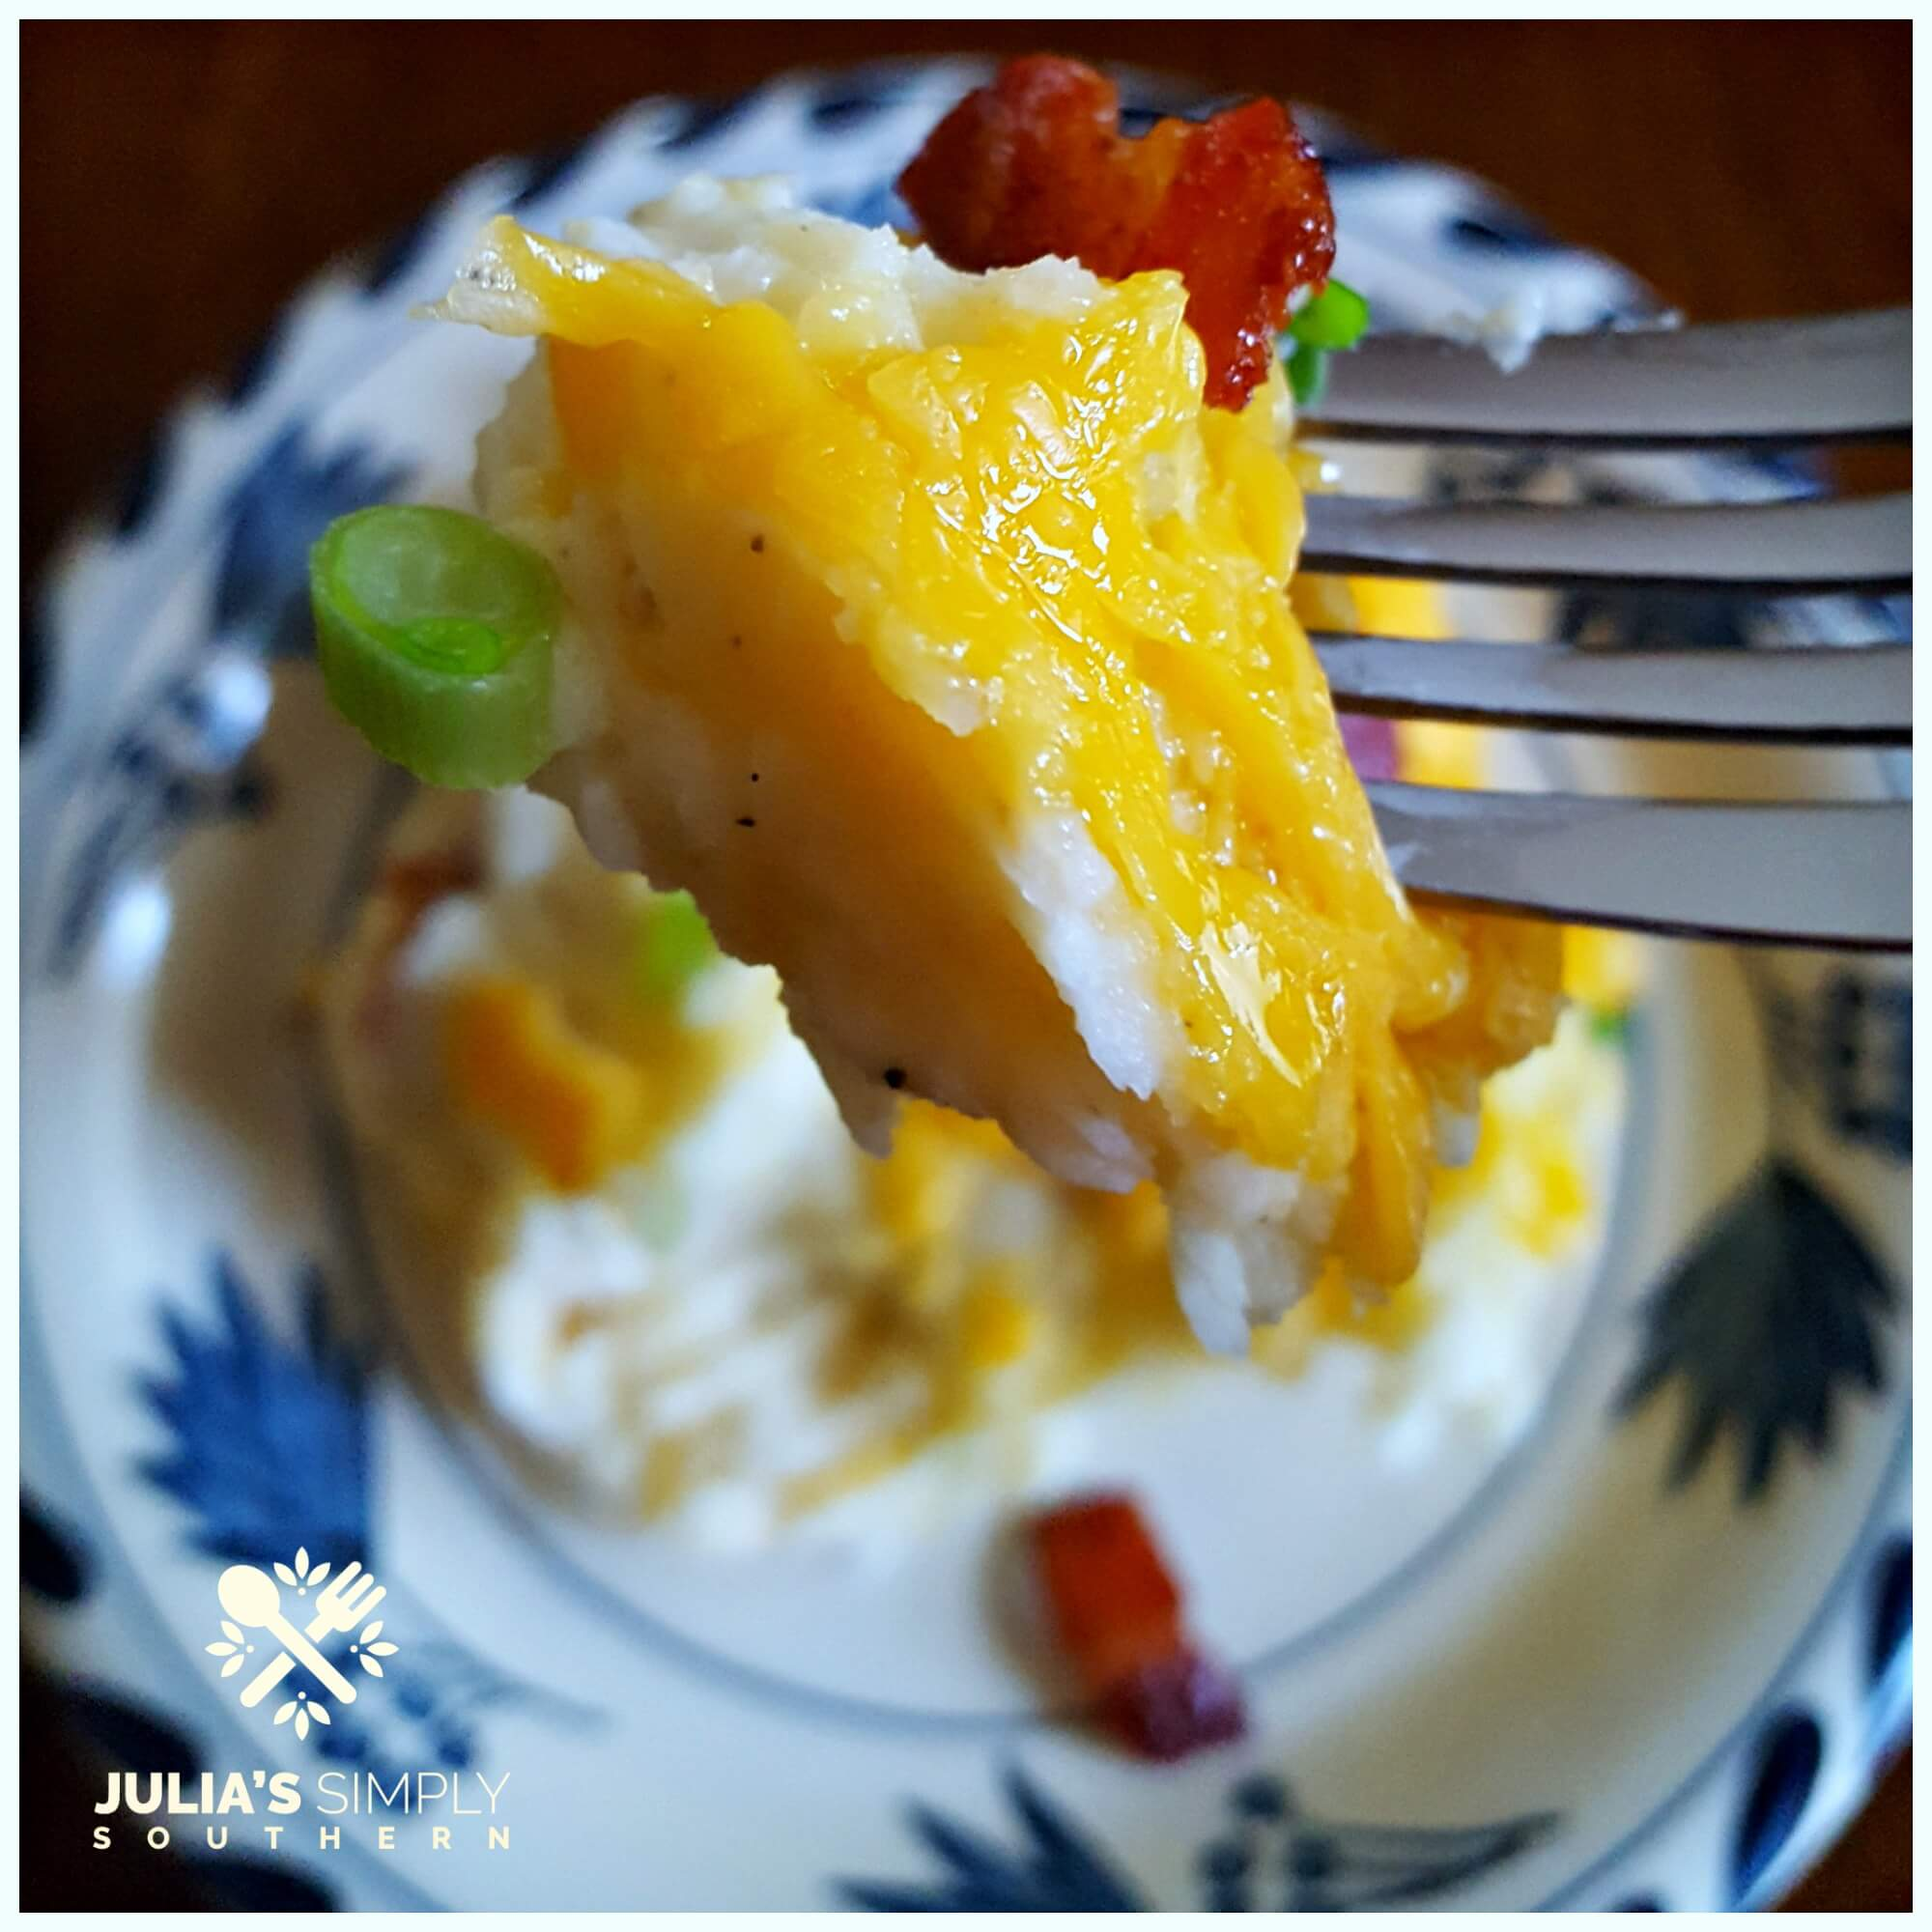 Perfect Bite of Twice Baked Potato Casserole - short cut with mashed potatoes